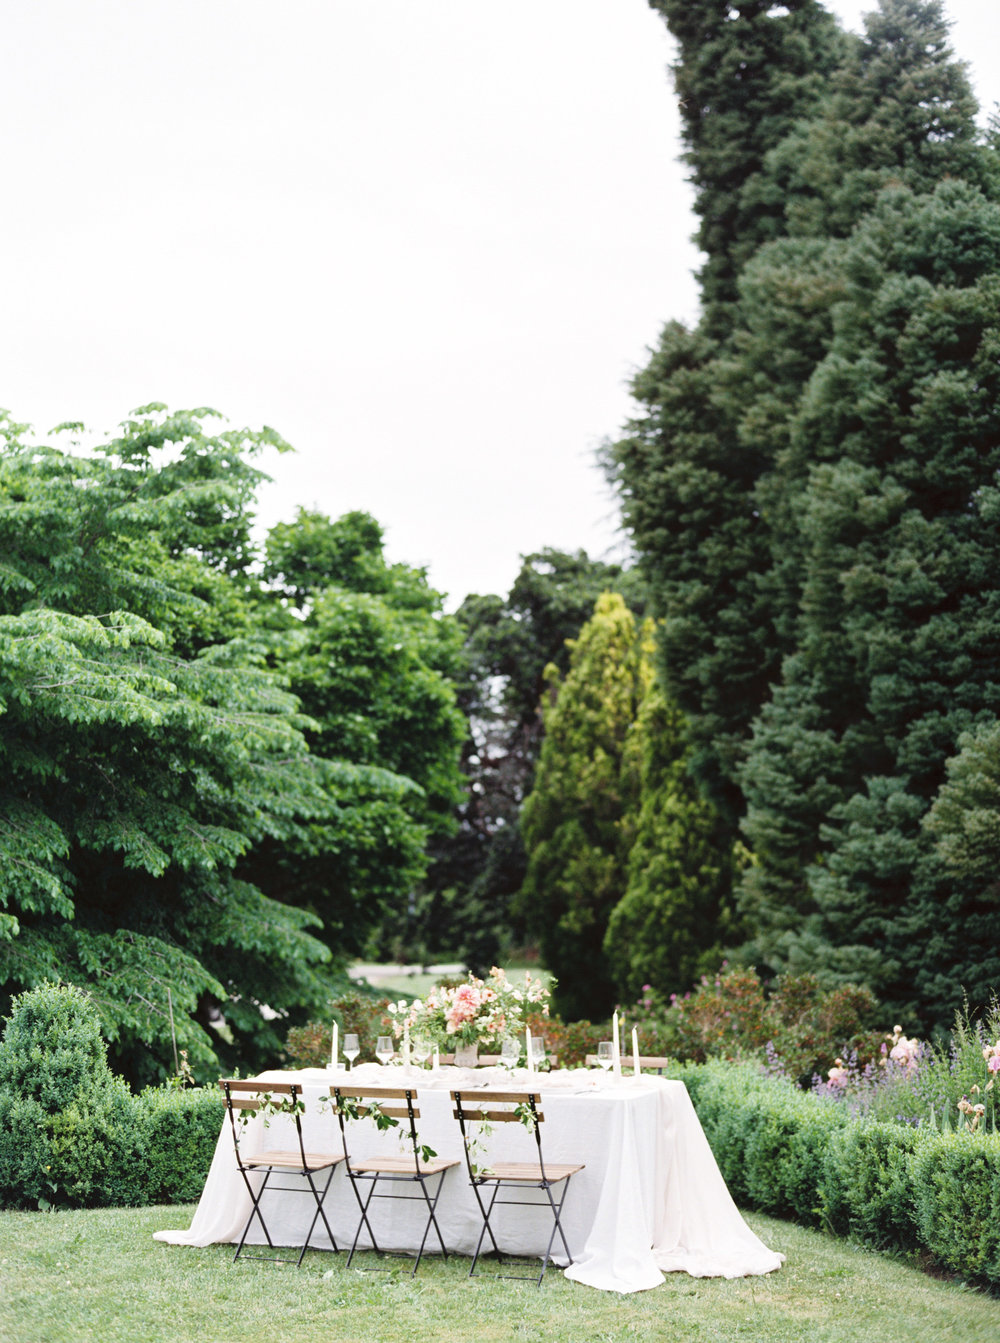 Timeless Southern Highland Wedding Elopement in Bowral NSW Fine Art Film Photographer Sheri McMahon-46.jpg